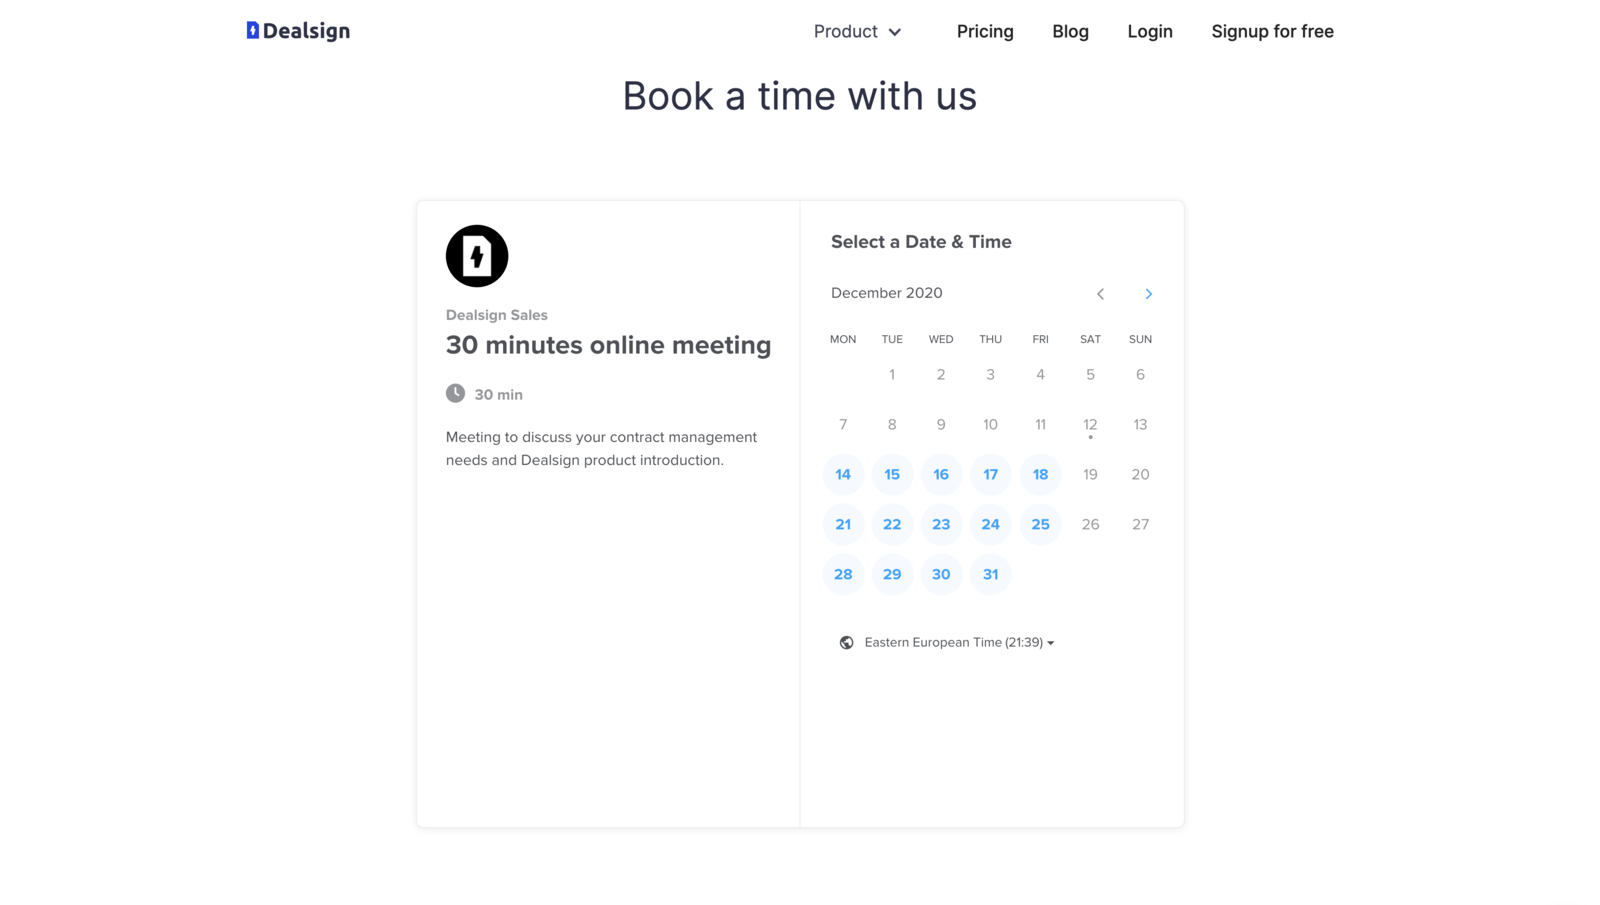 Schedule a meeting with Dealsign